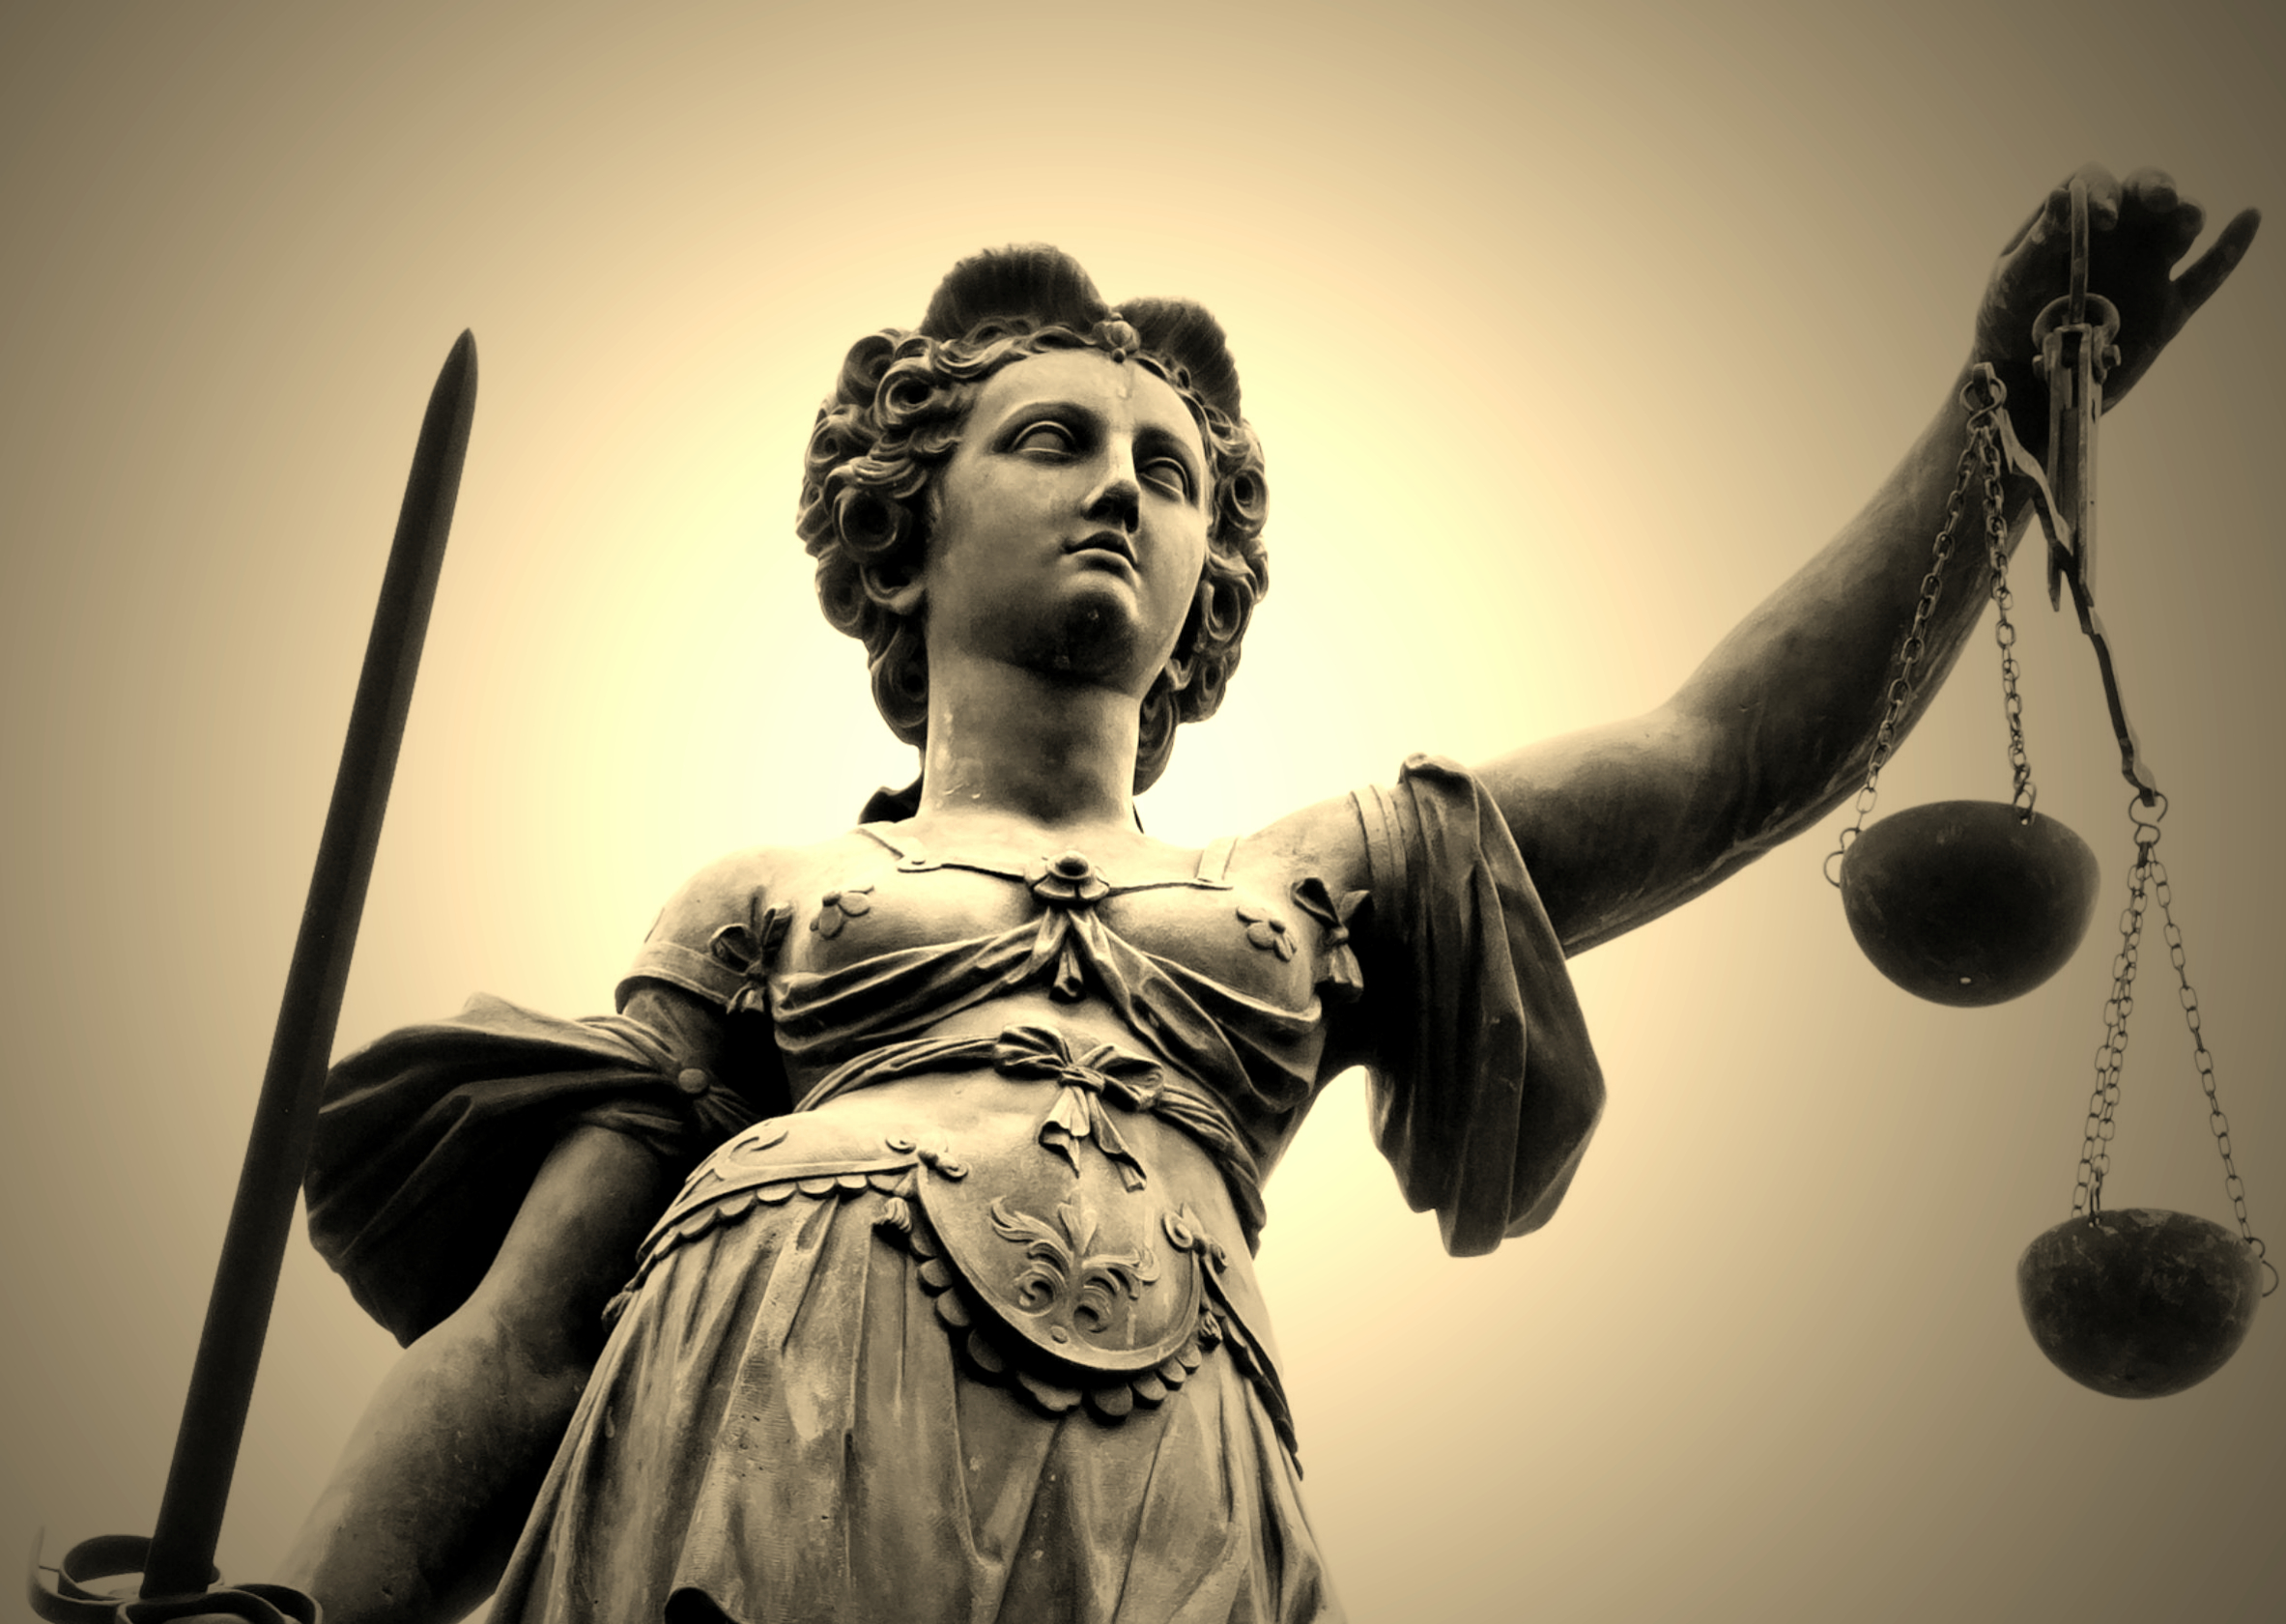 LadyJustice_Fotor